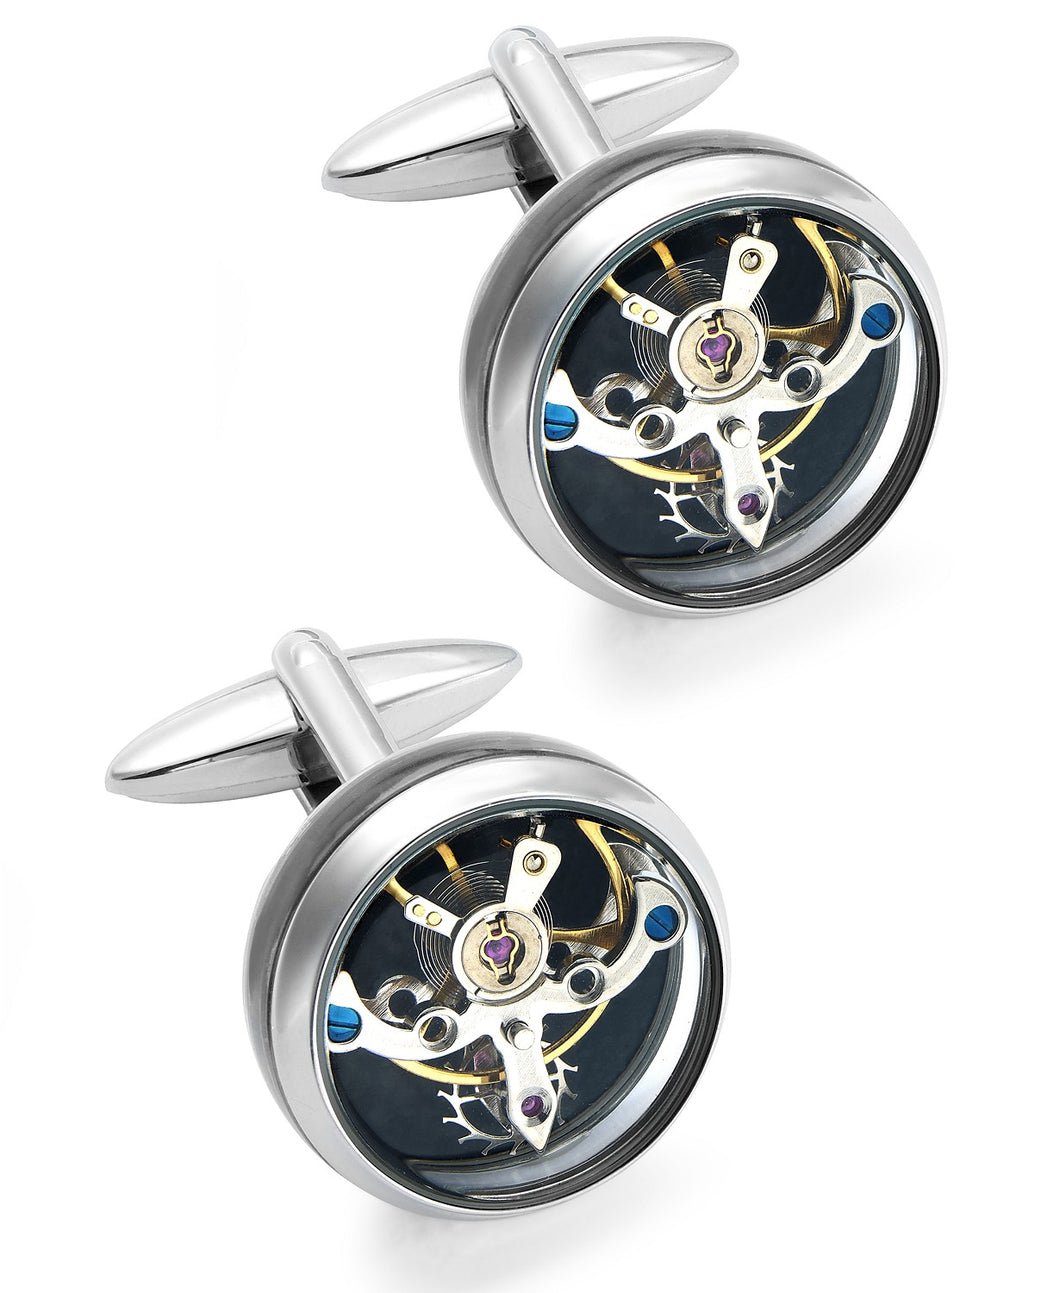 Men's Stainless Steel Clock Cuff Links